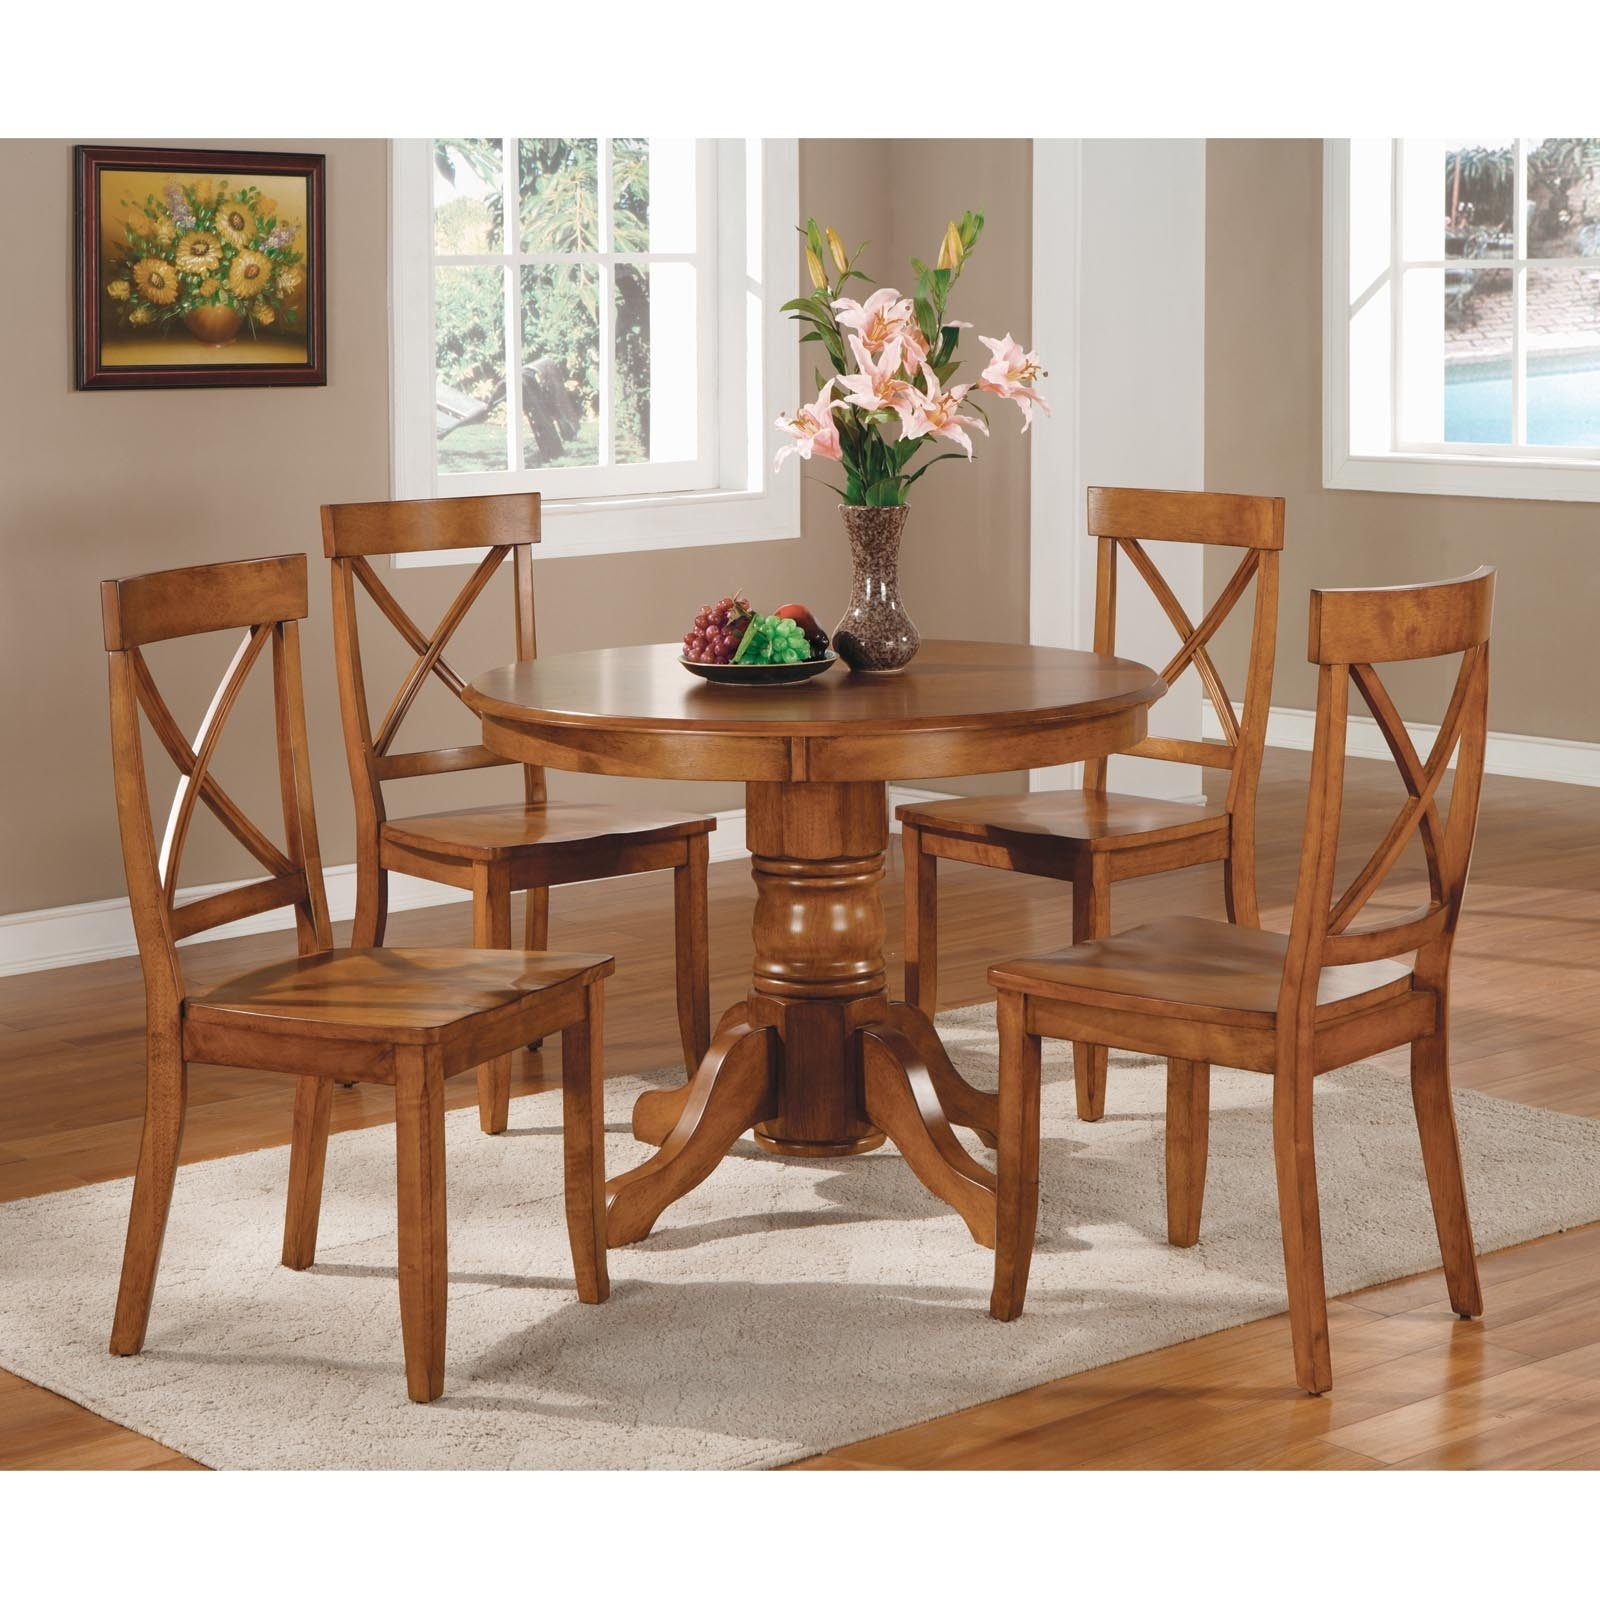 Round Oak Dining Tables And Chairs in Most Popular Home Styles Pedestal Dining Table, Cottage Oak - Walmart